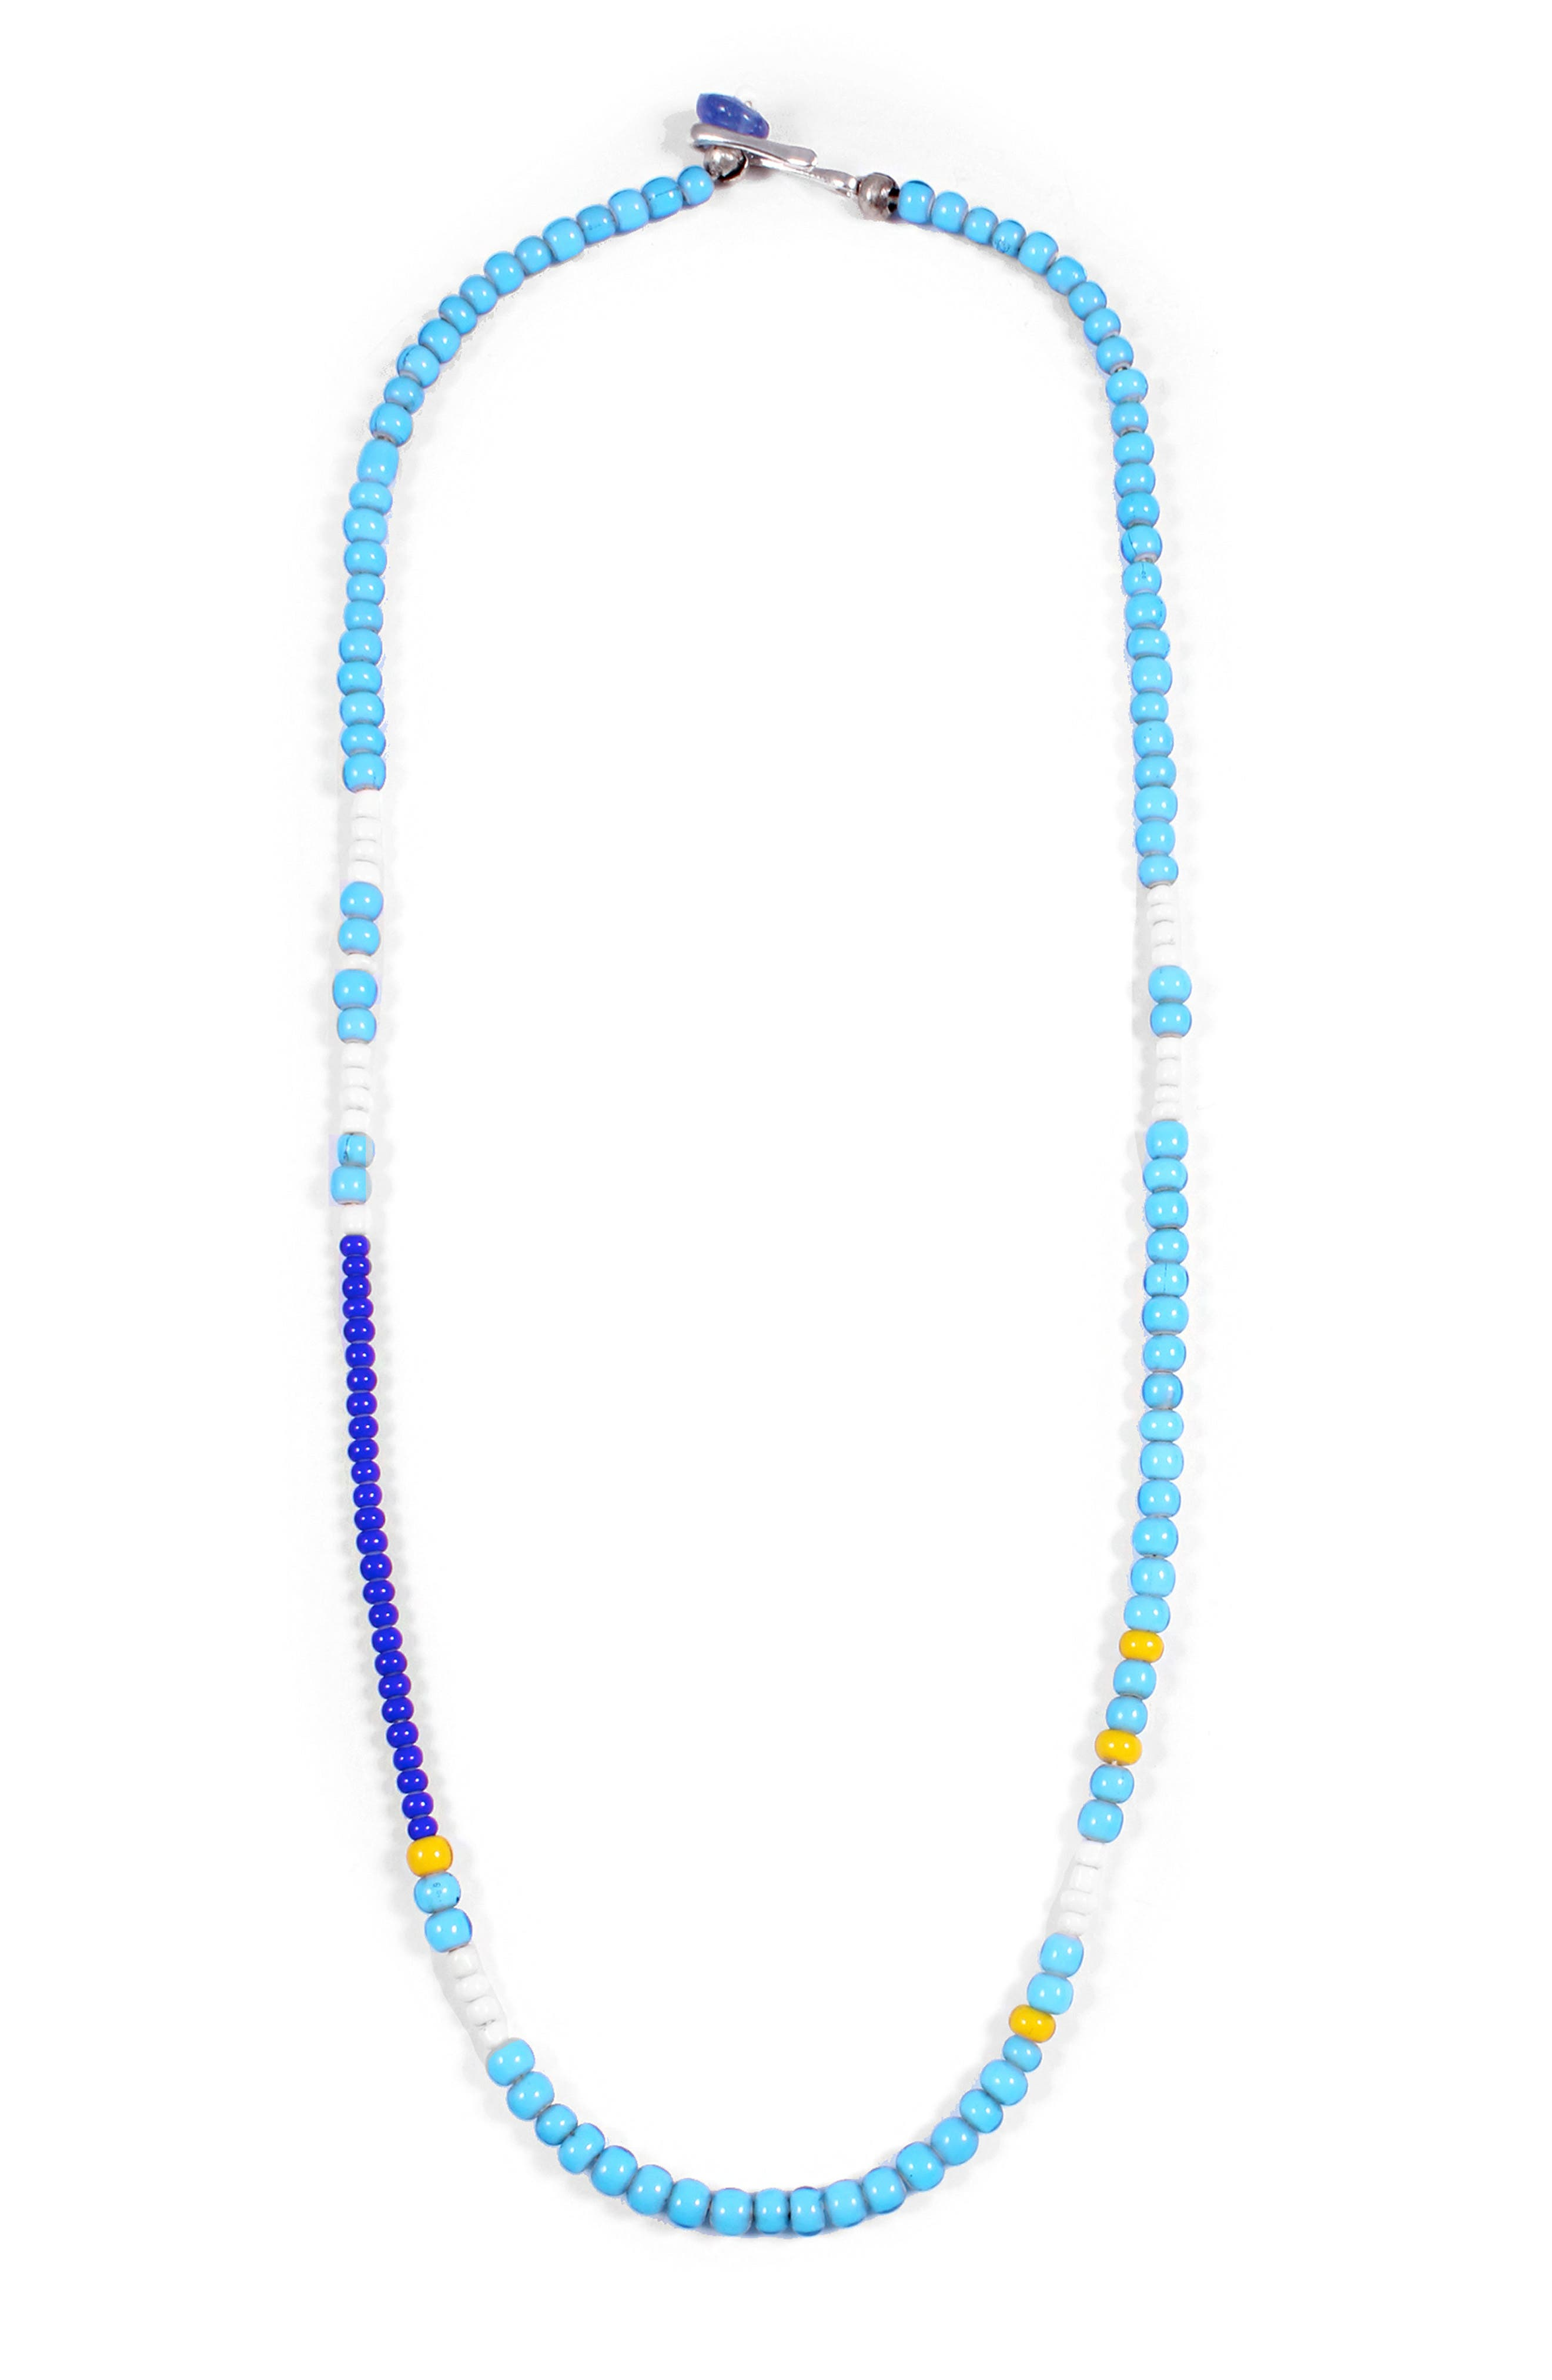 Calm Morse Necklace,                             Main thumbnail 1, color,                             Blue/ White/ Yellow